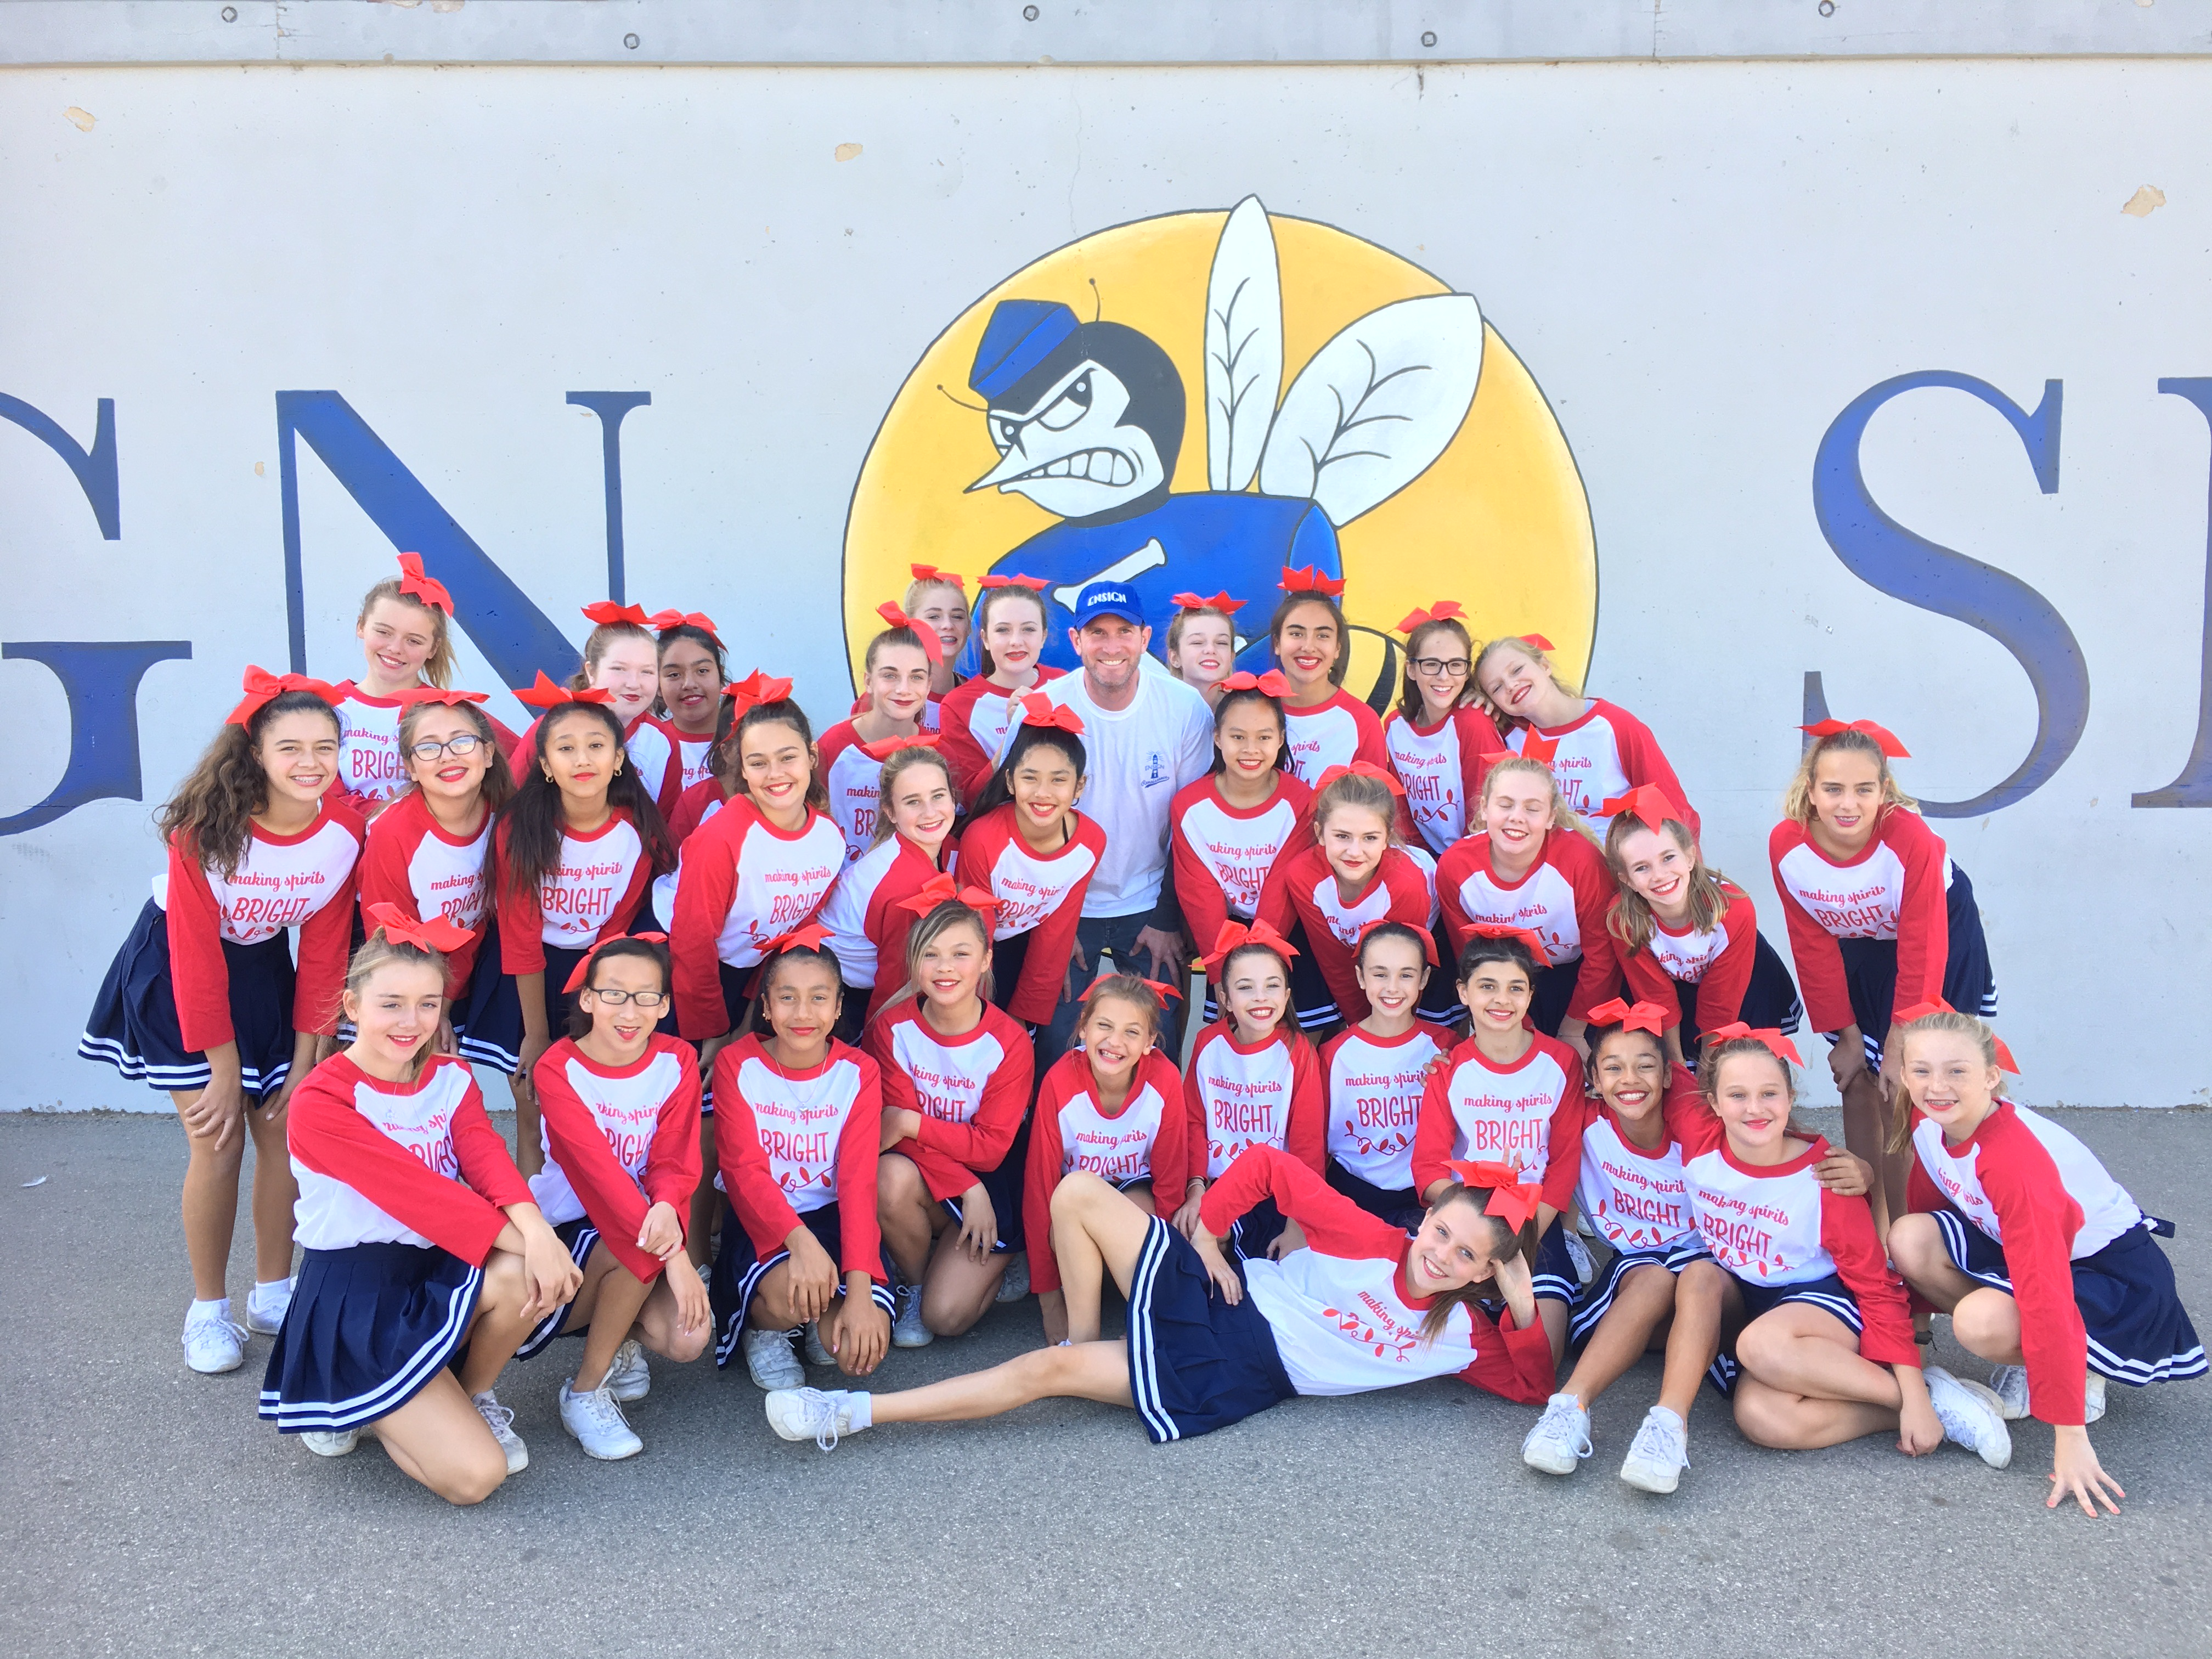 Ensign cheer squad with Mr. Sciacca